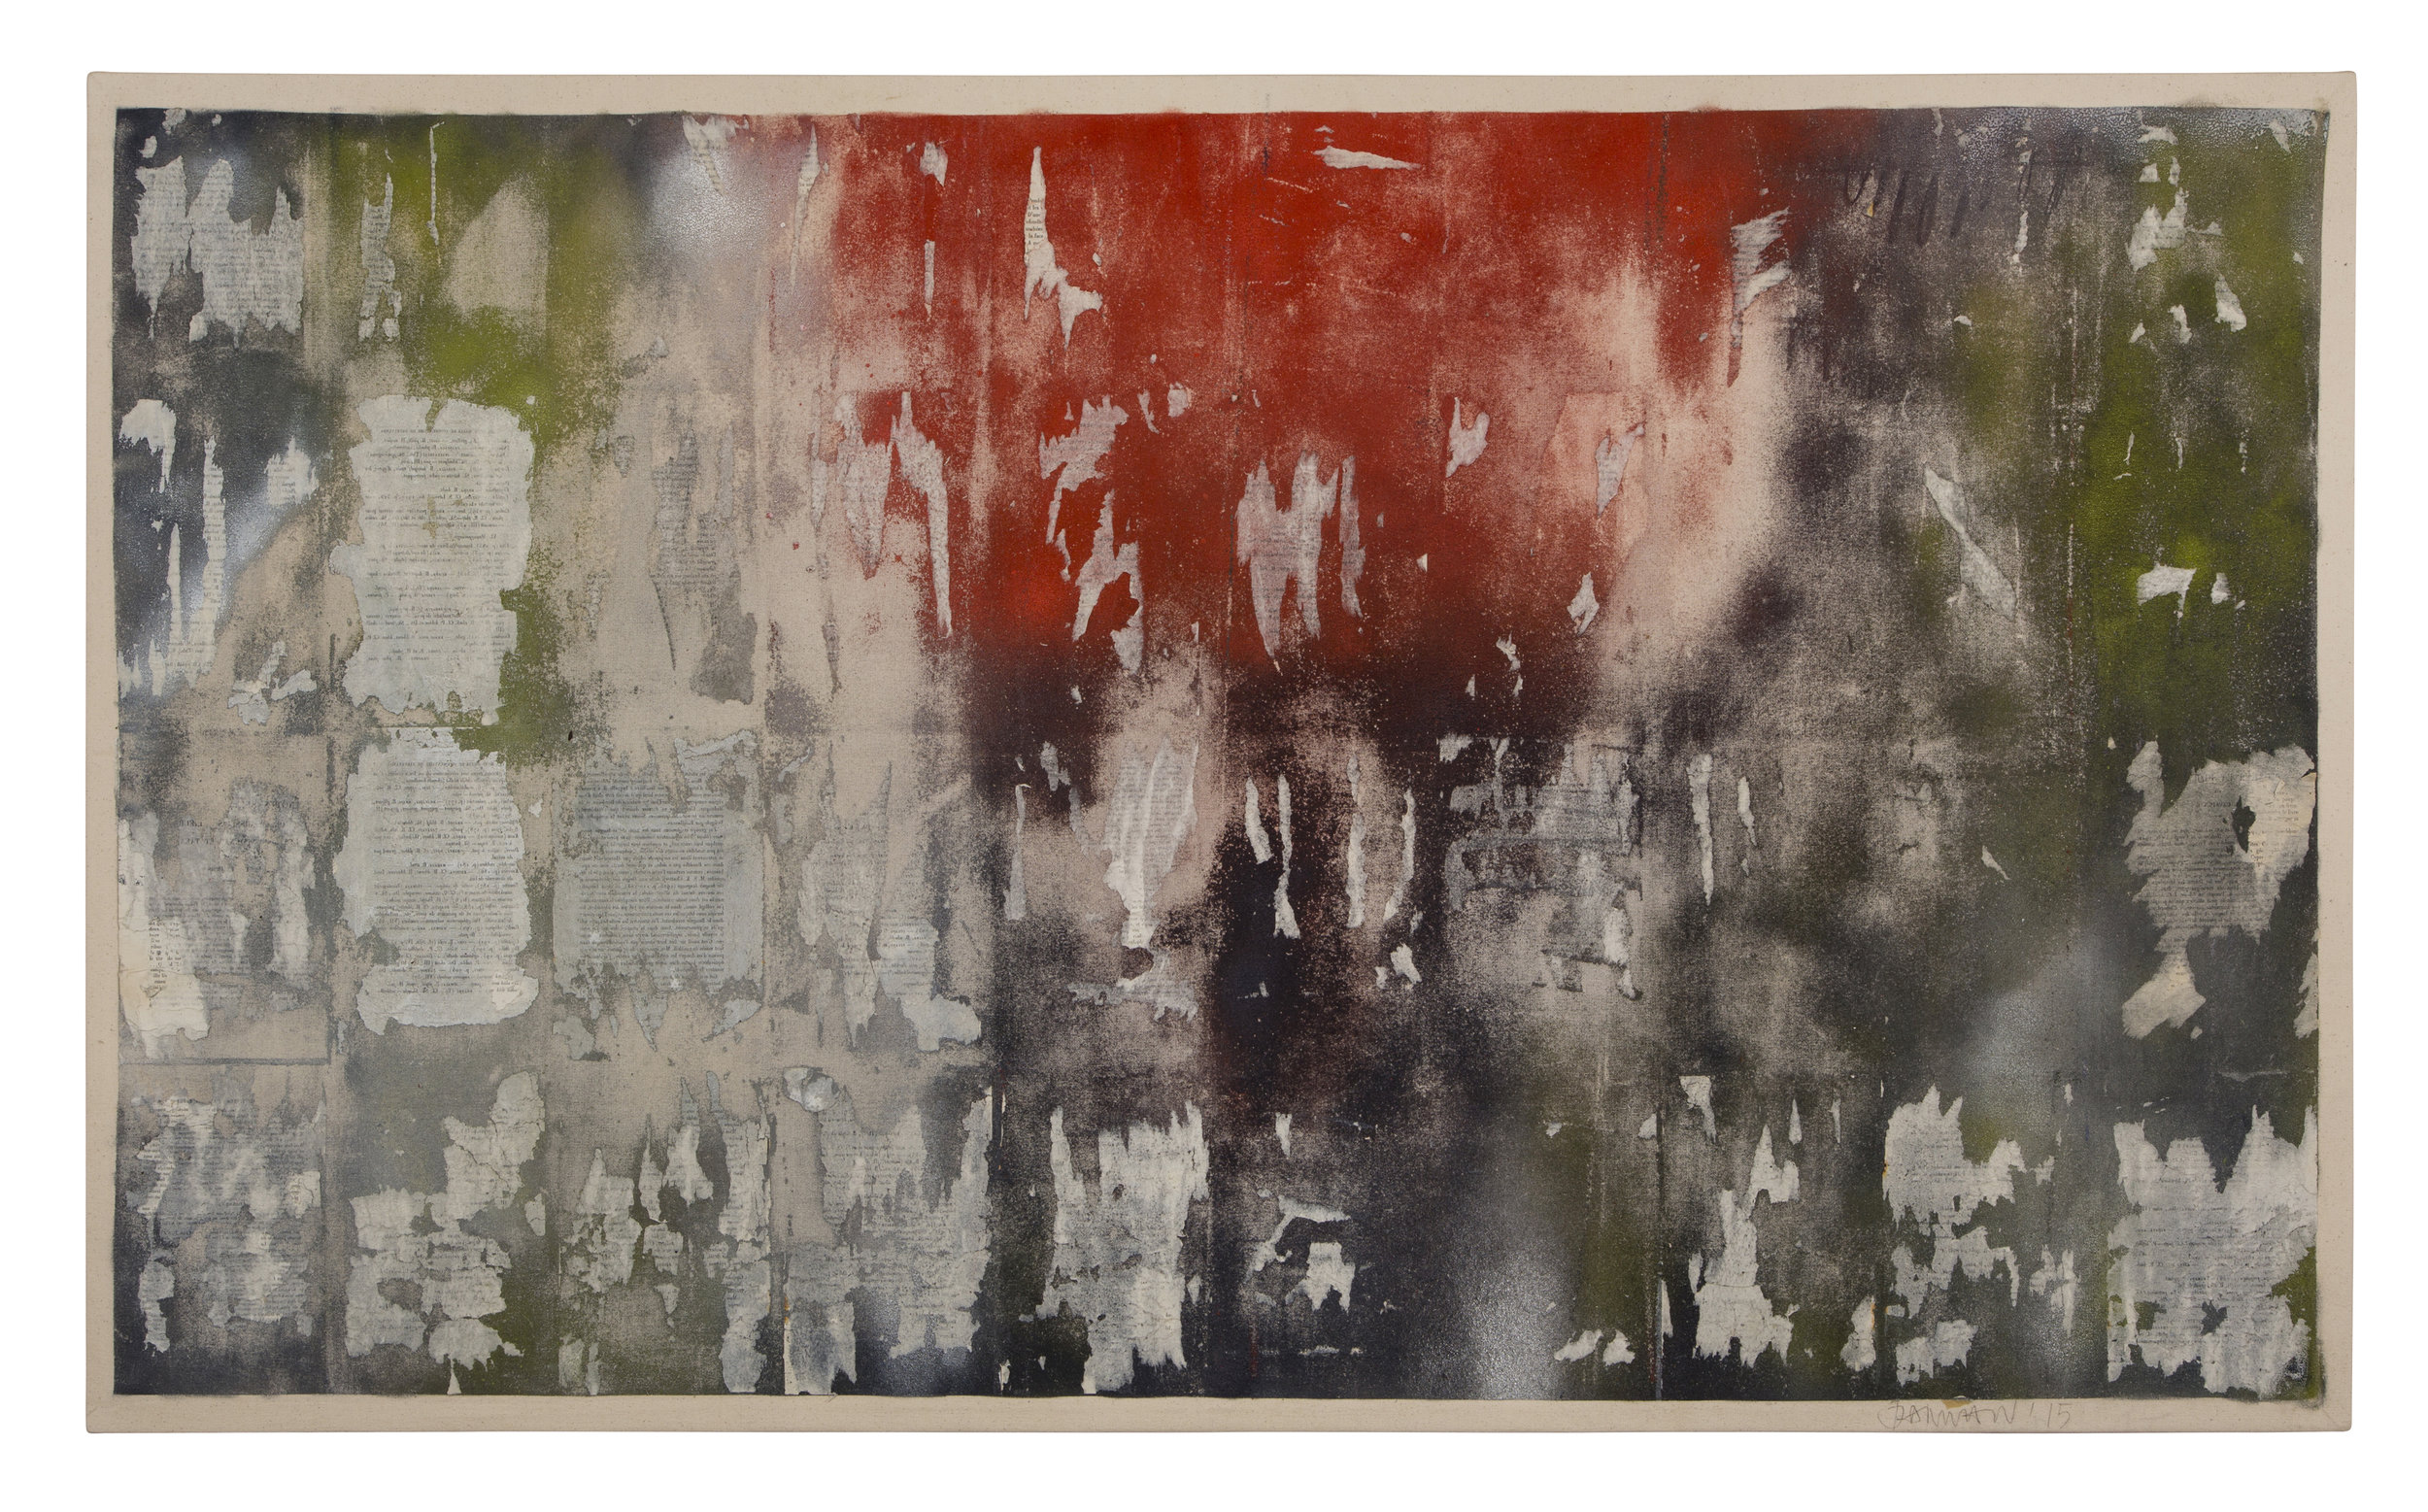 uncharted territory 8, 2015. Printed papers on canvas with acrylic and spray paint, 40.5 x 64.5in (103 x 165cm)